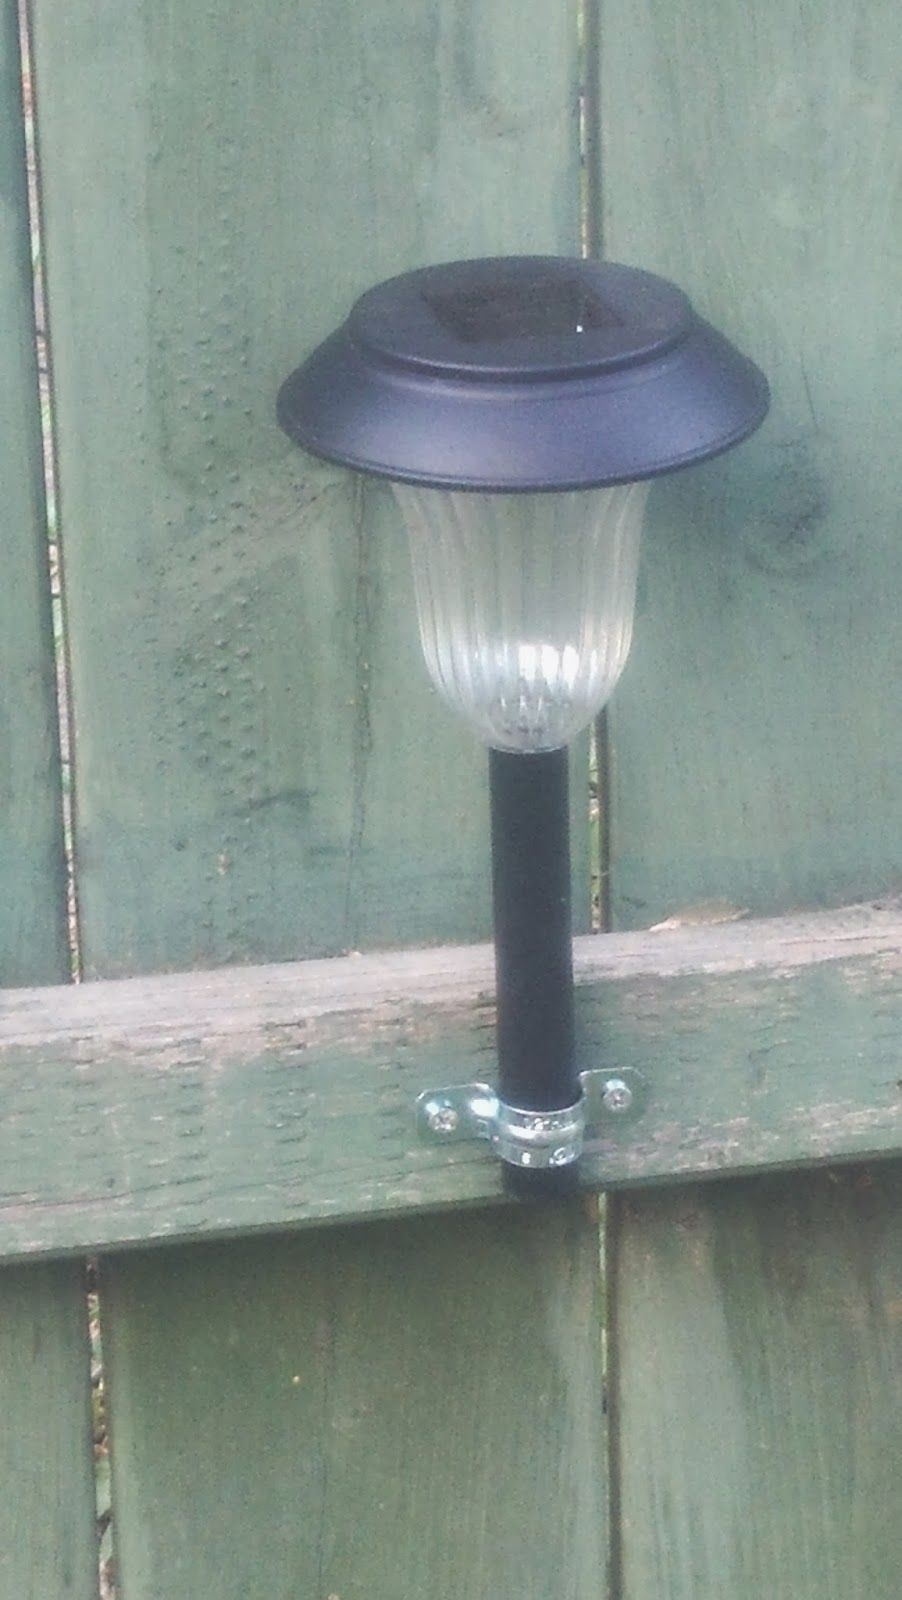 A musings solar light idea jardines luces solares for Balizas solares para jardin